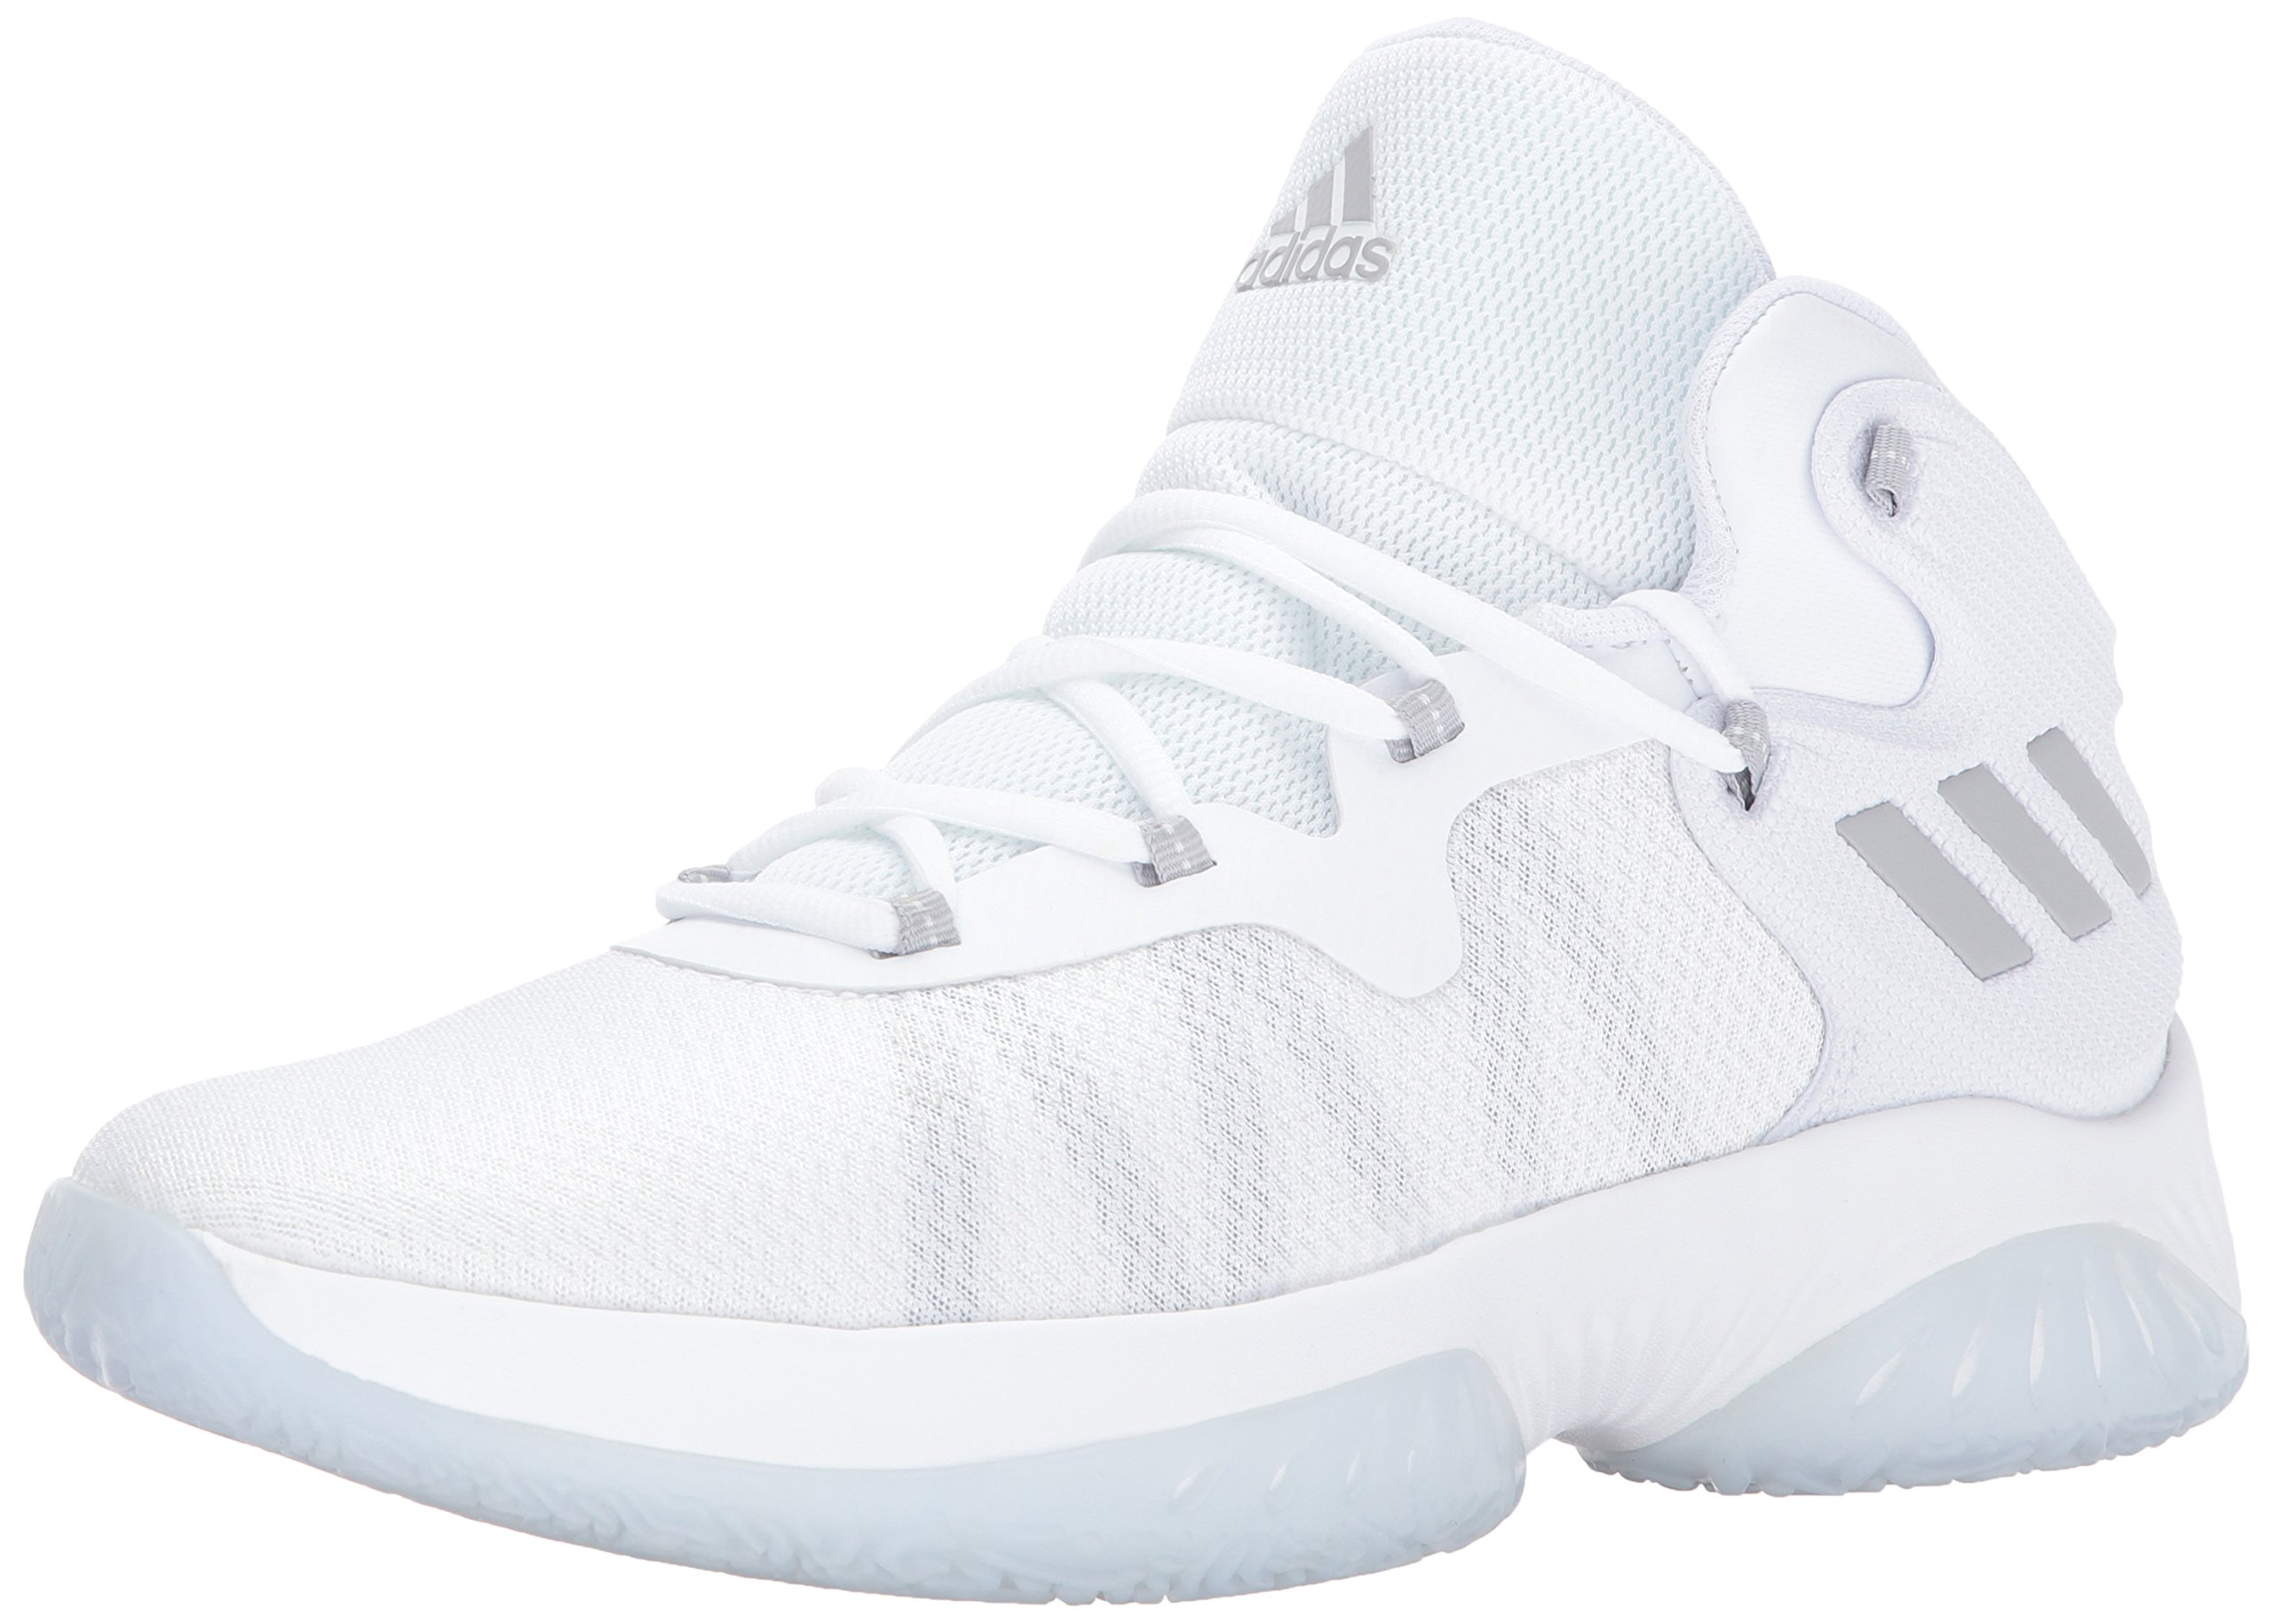 buy online d9342 312eb Galleon - Adidas Mens Explosive Bounce Basketball Shoes, Grey TwoWhite,  (8 M US)